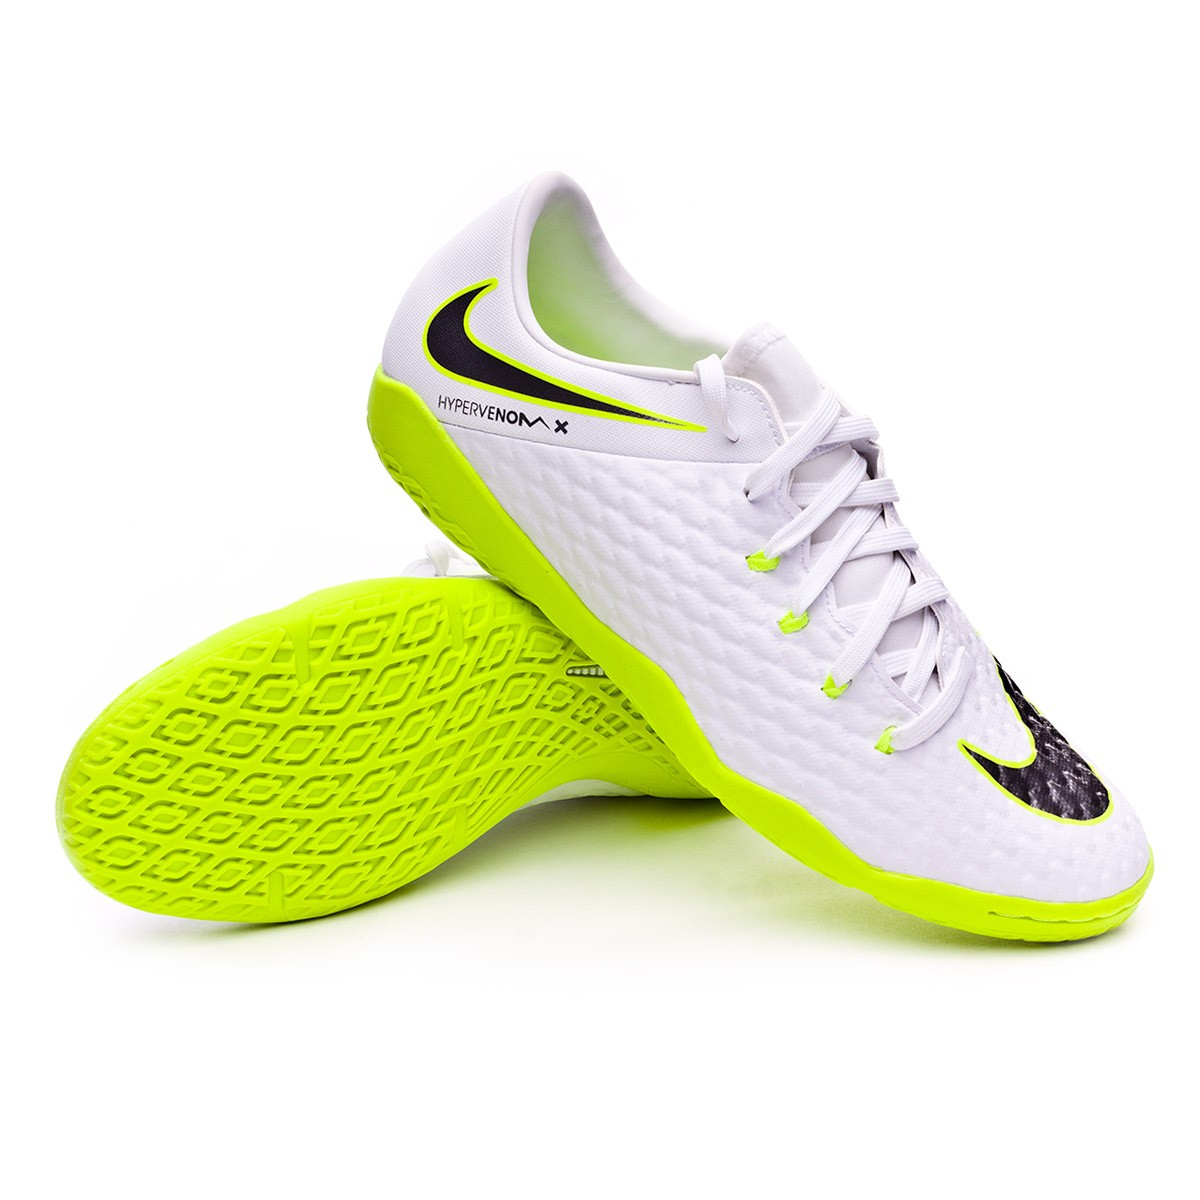 huge selection of 38595 9d64a Zapatilla Hypervenom PhantomX III Academy IC White-Metallic cool  grey-Volt-Metallic cool g